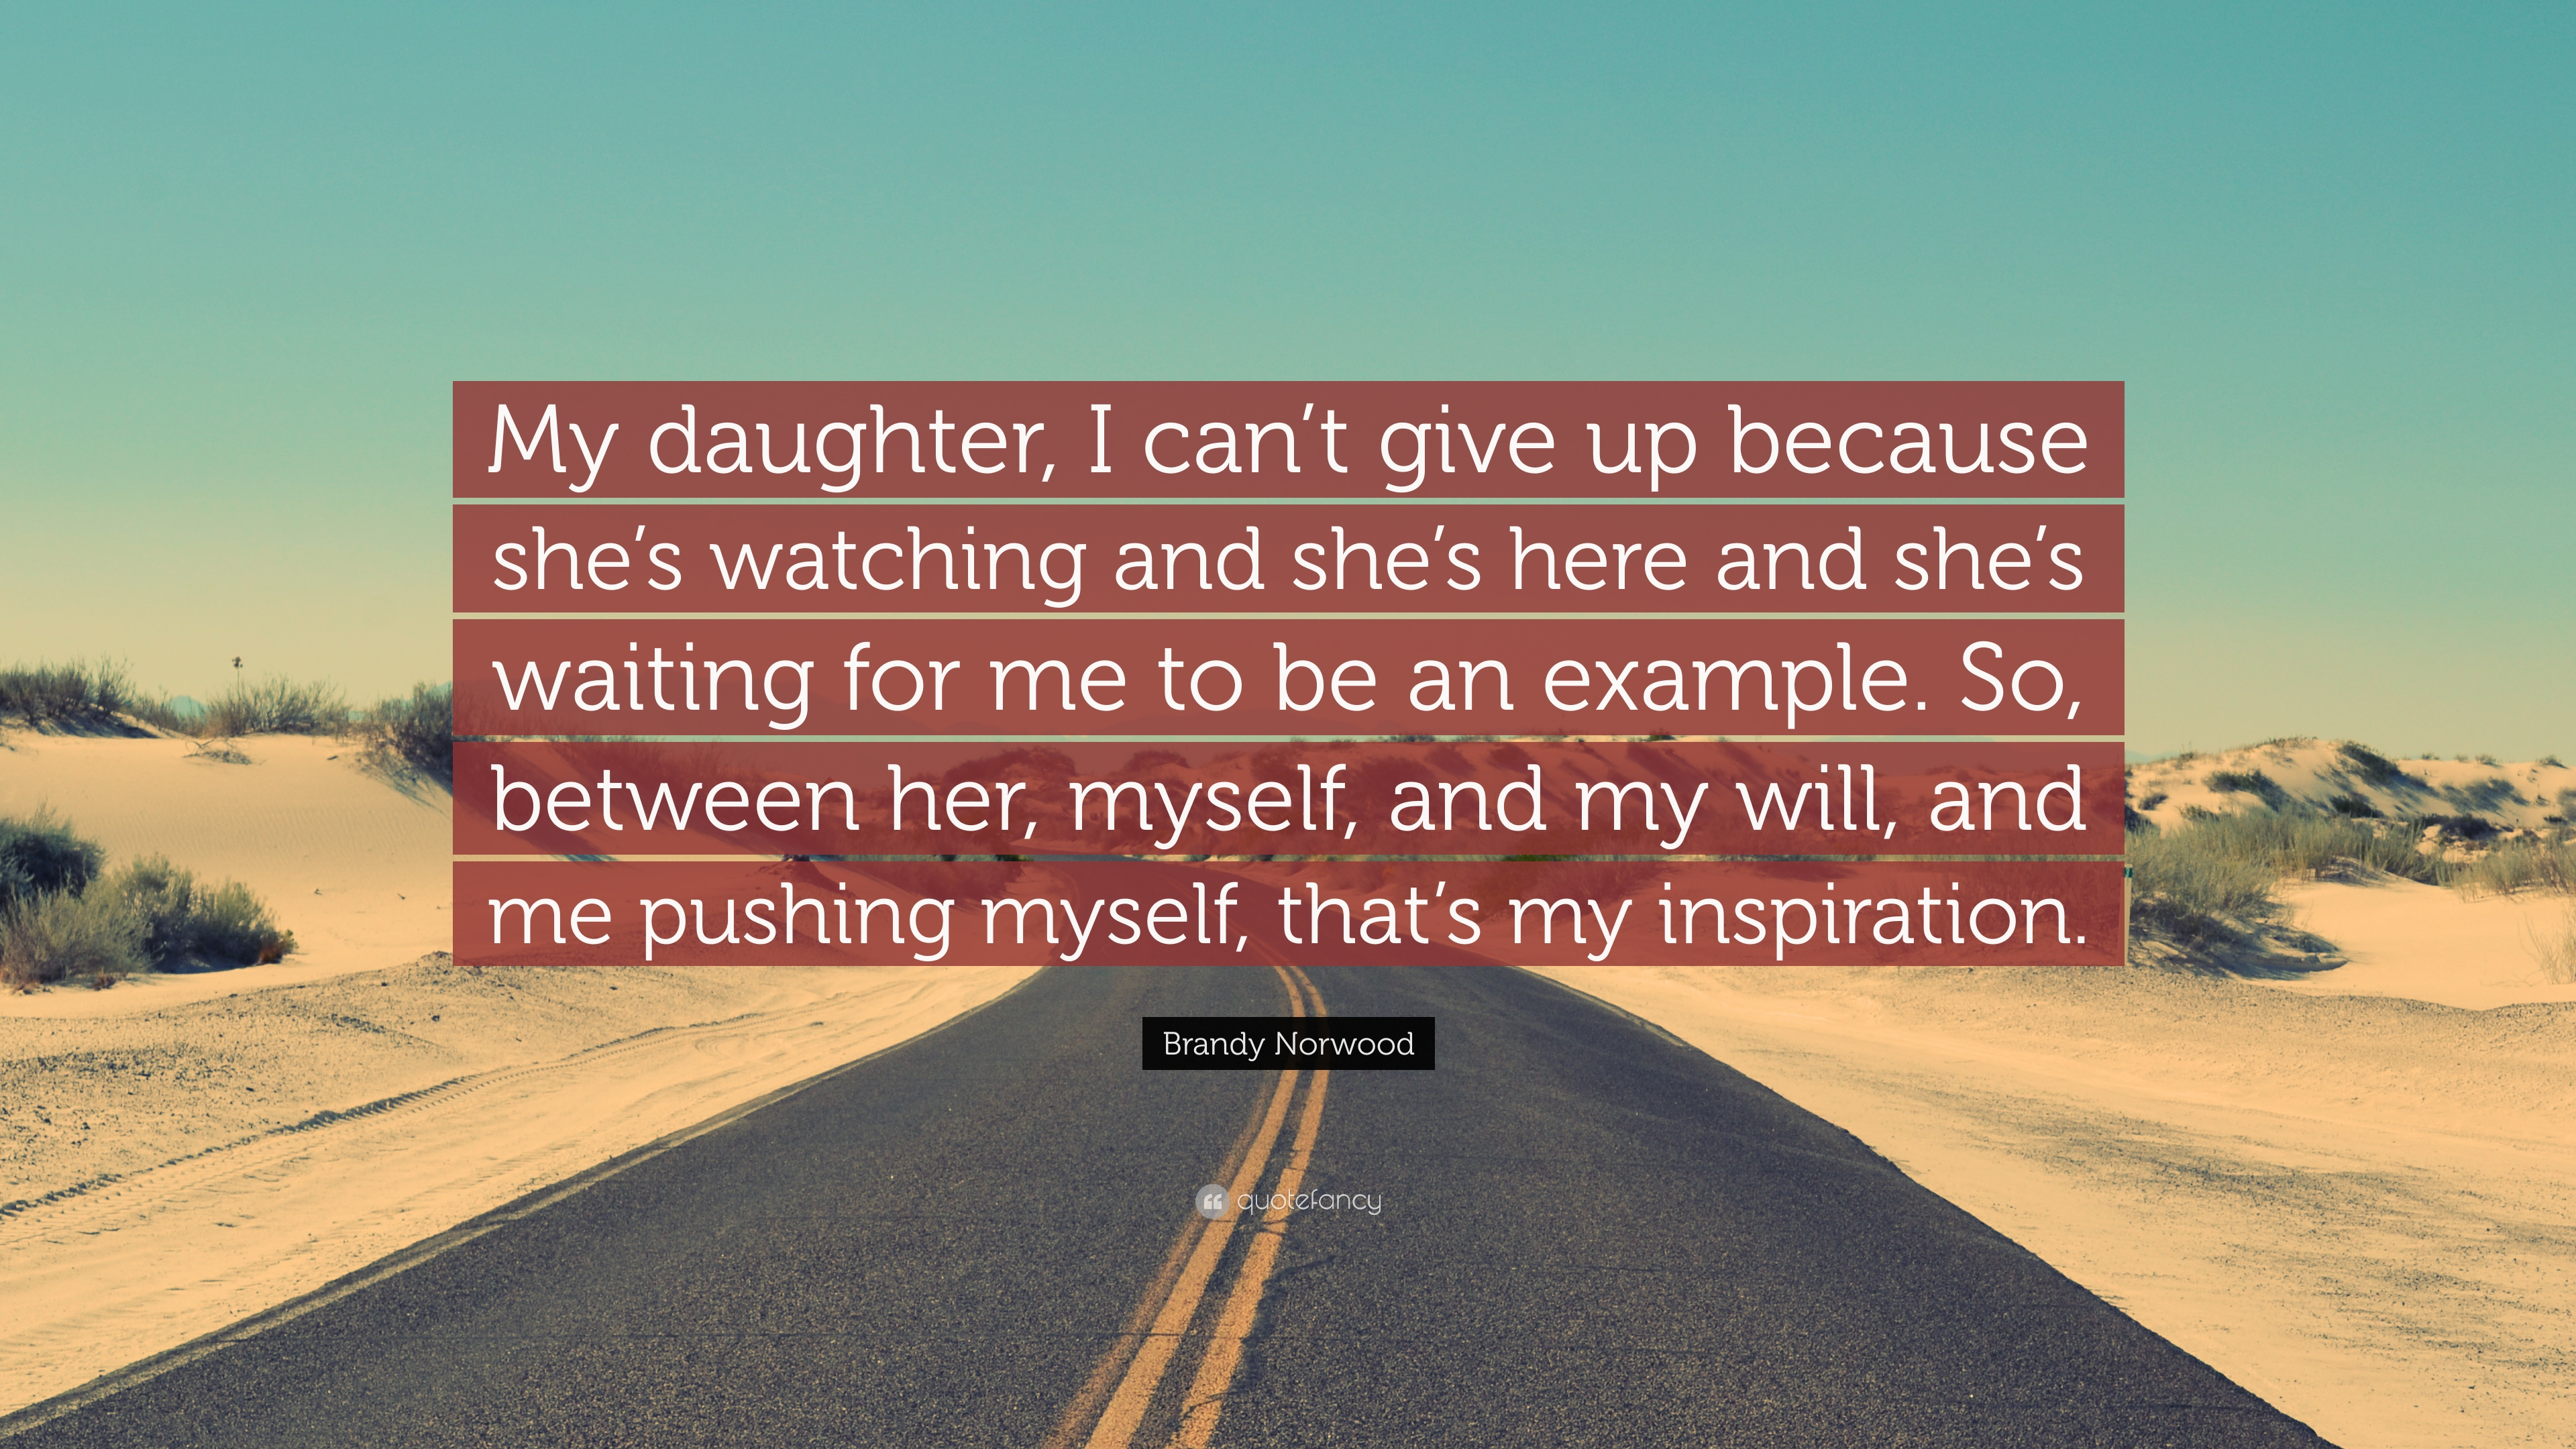 brandy norwood quote my daughter i cant give up because shes